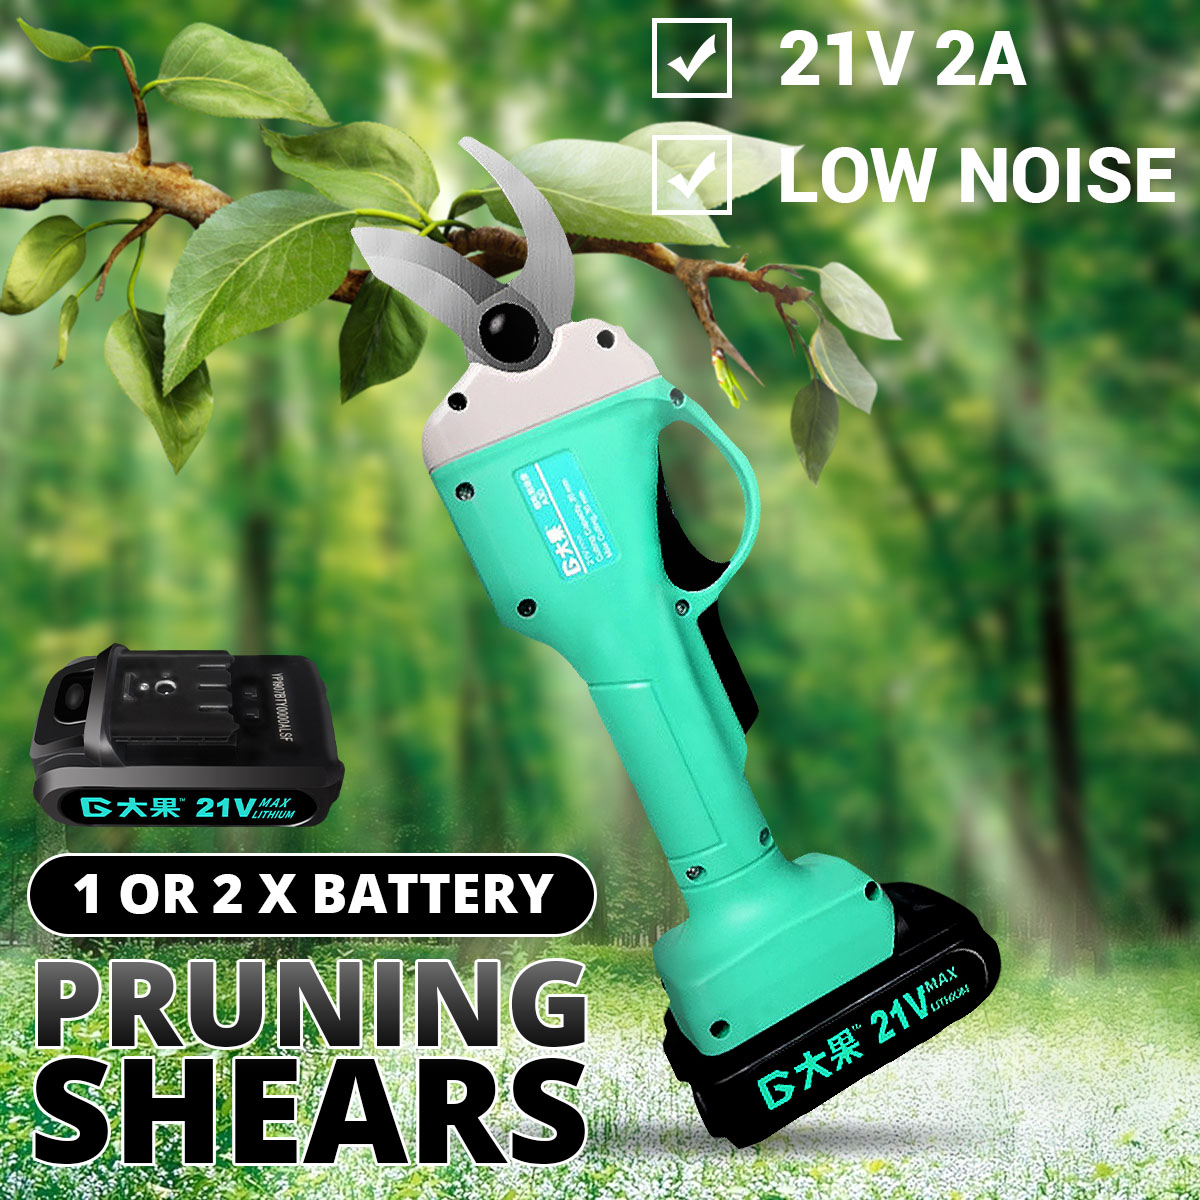 NEW 21V Wireless Electric Rechargeable Scissors Pruning Shears Tree Garden Tool Branches Pruning Tools W/1 Or 2 Li-ion Battery